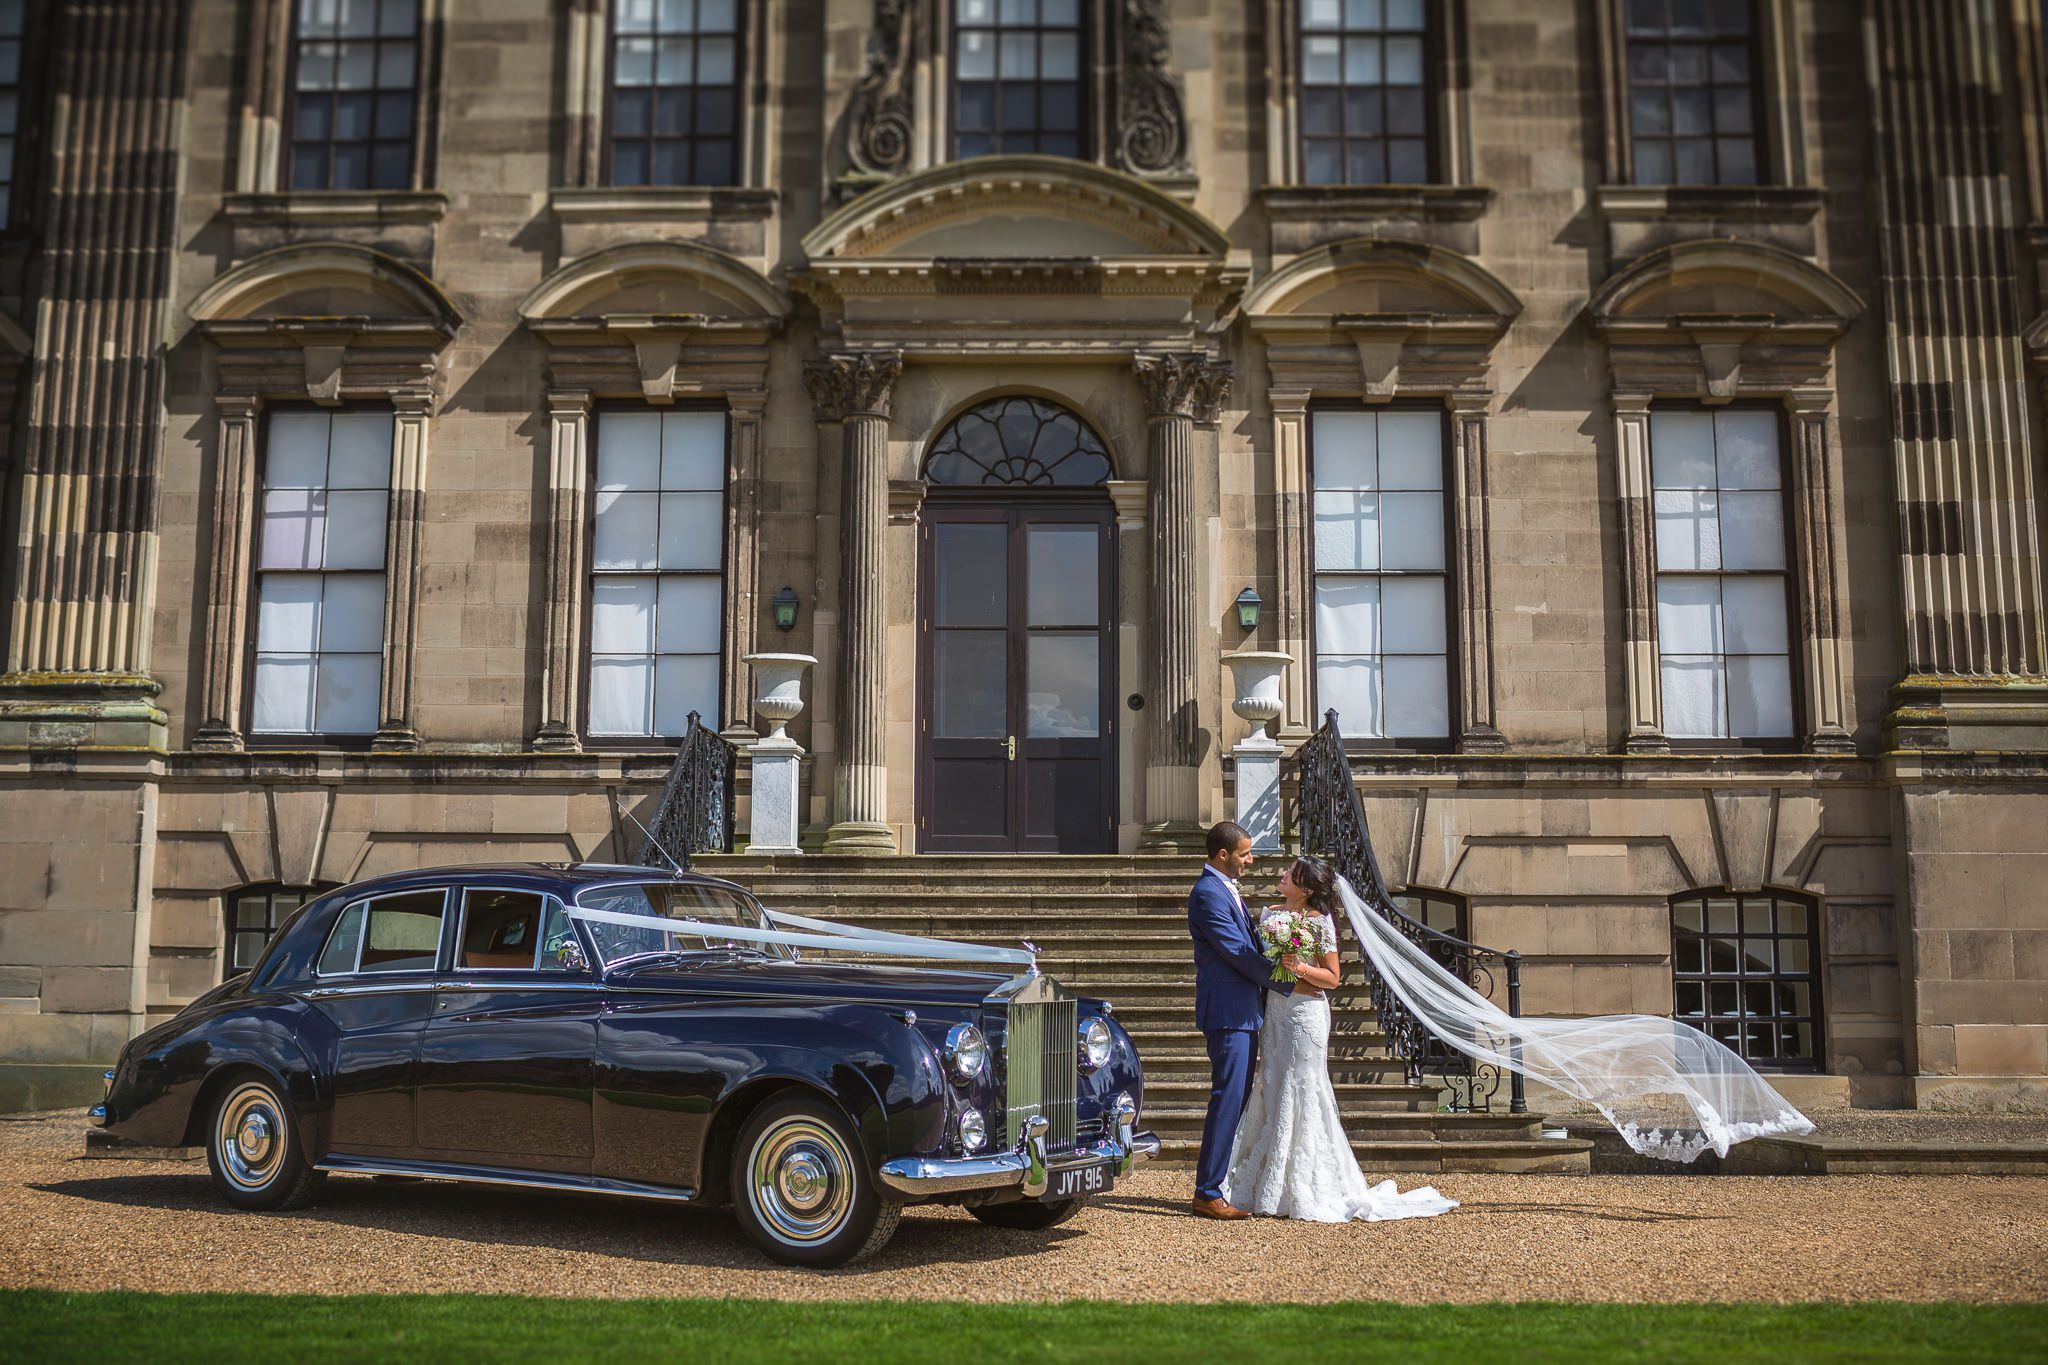 A couple in front of a grand building by Stoneleigh Abbey Wedding Photographer, S2 Images